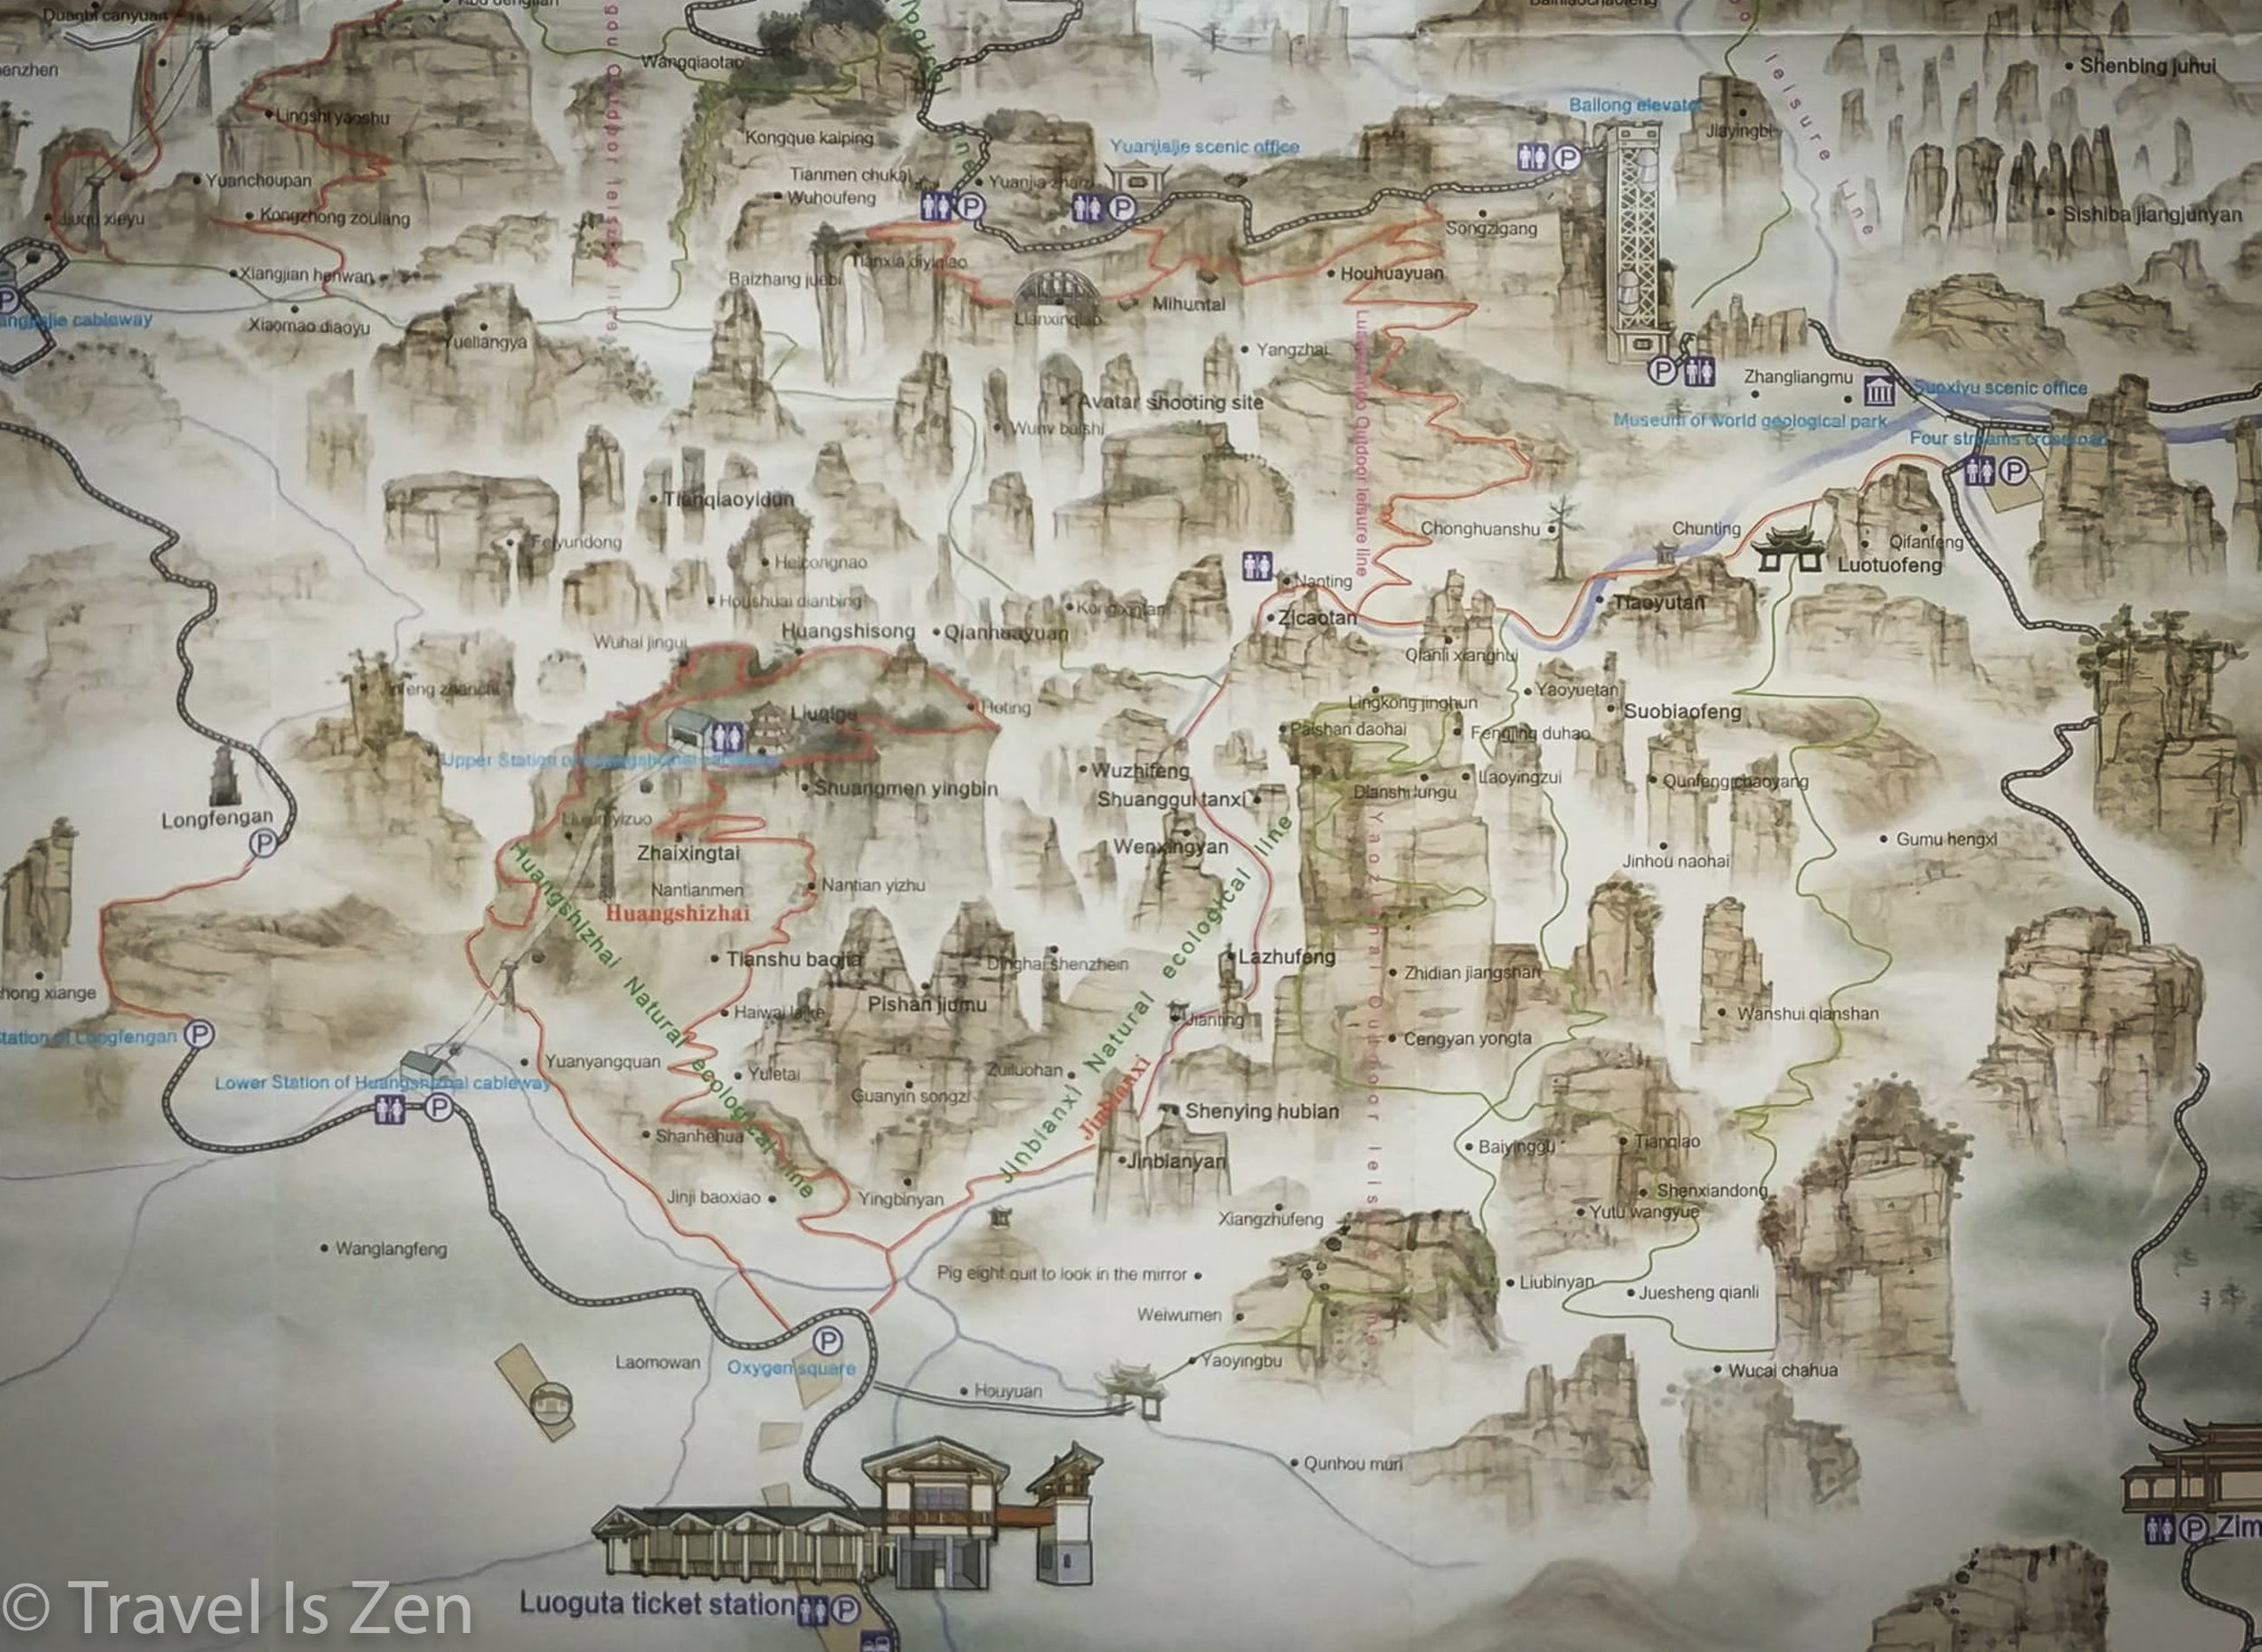 Yuanjiajie Huang Shi Zhai and Golden Whip Stream - red lines denote walking trails